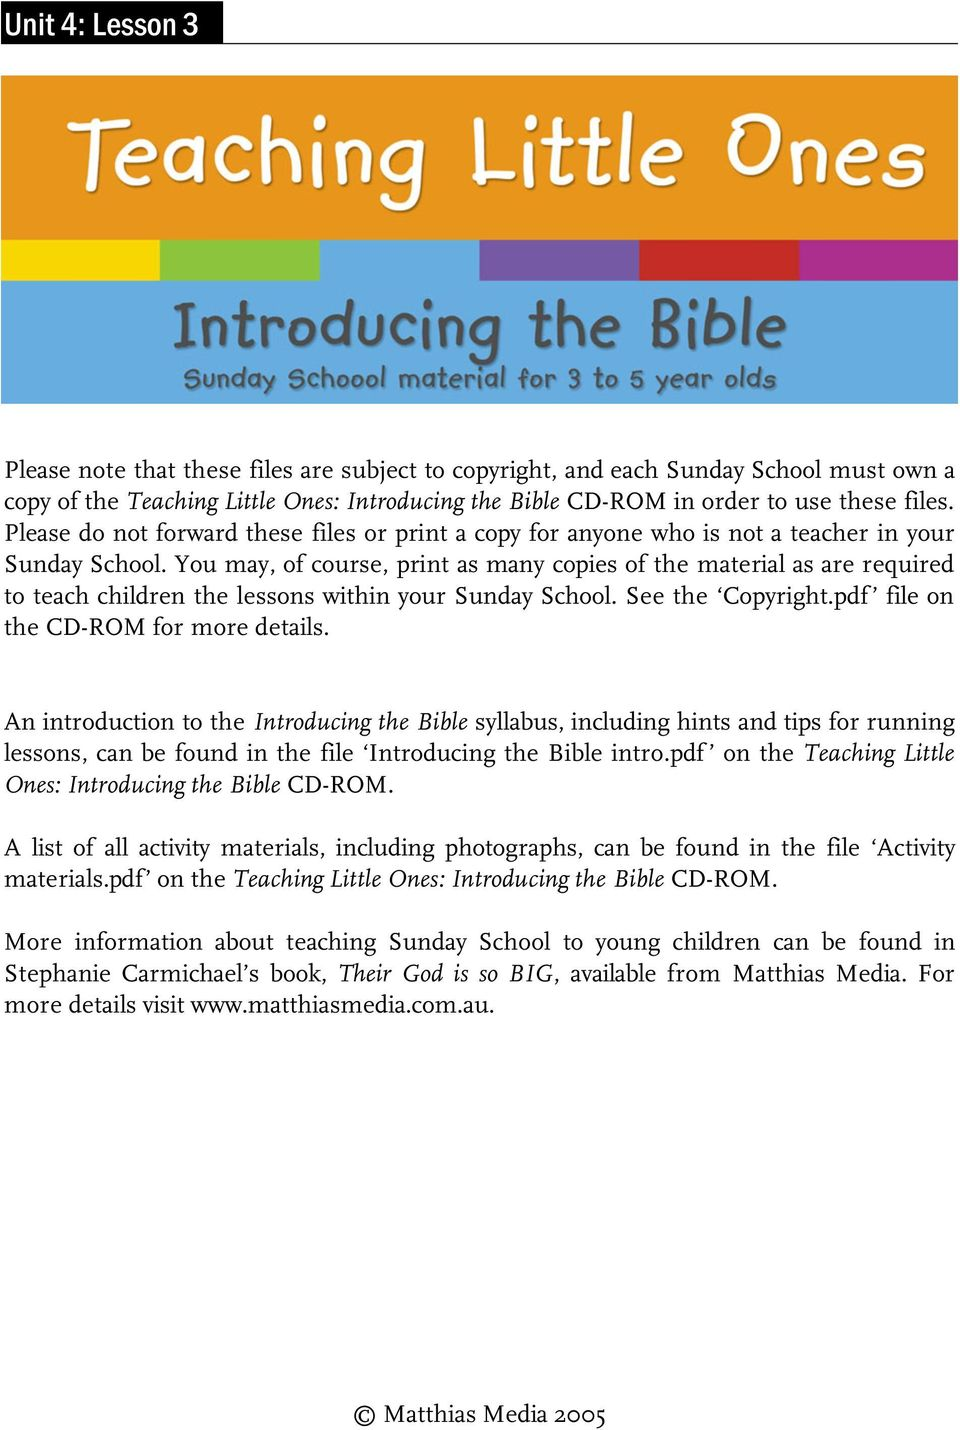 You may, of course, print as many copies of the material as are required to teach children the lessons within your Sunday School. See the Copyright.pdf file on the CD-ROM for more details.